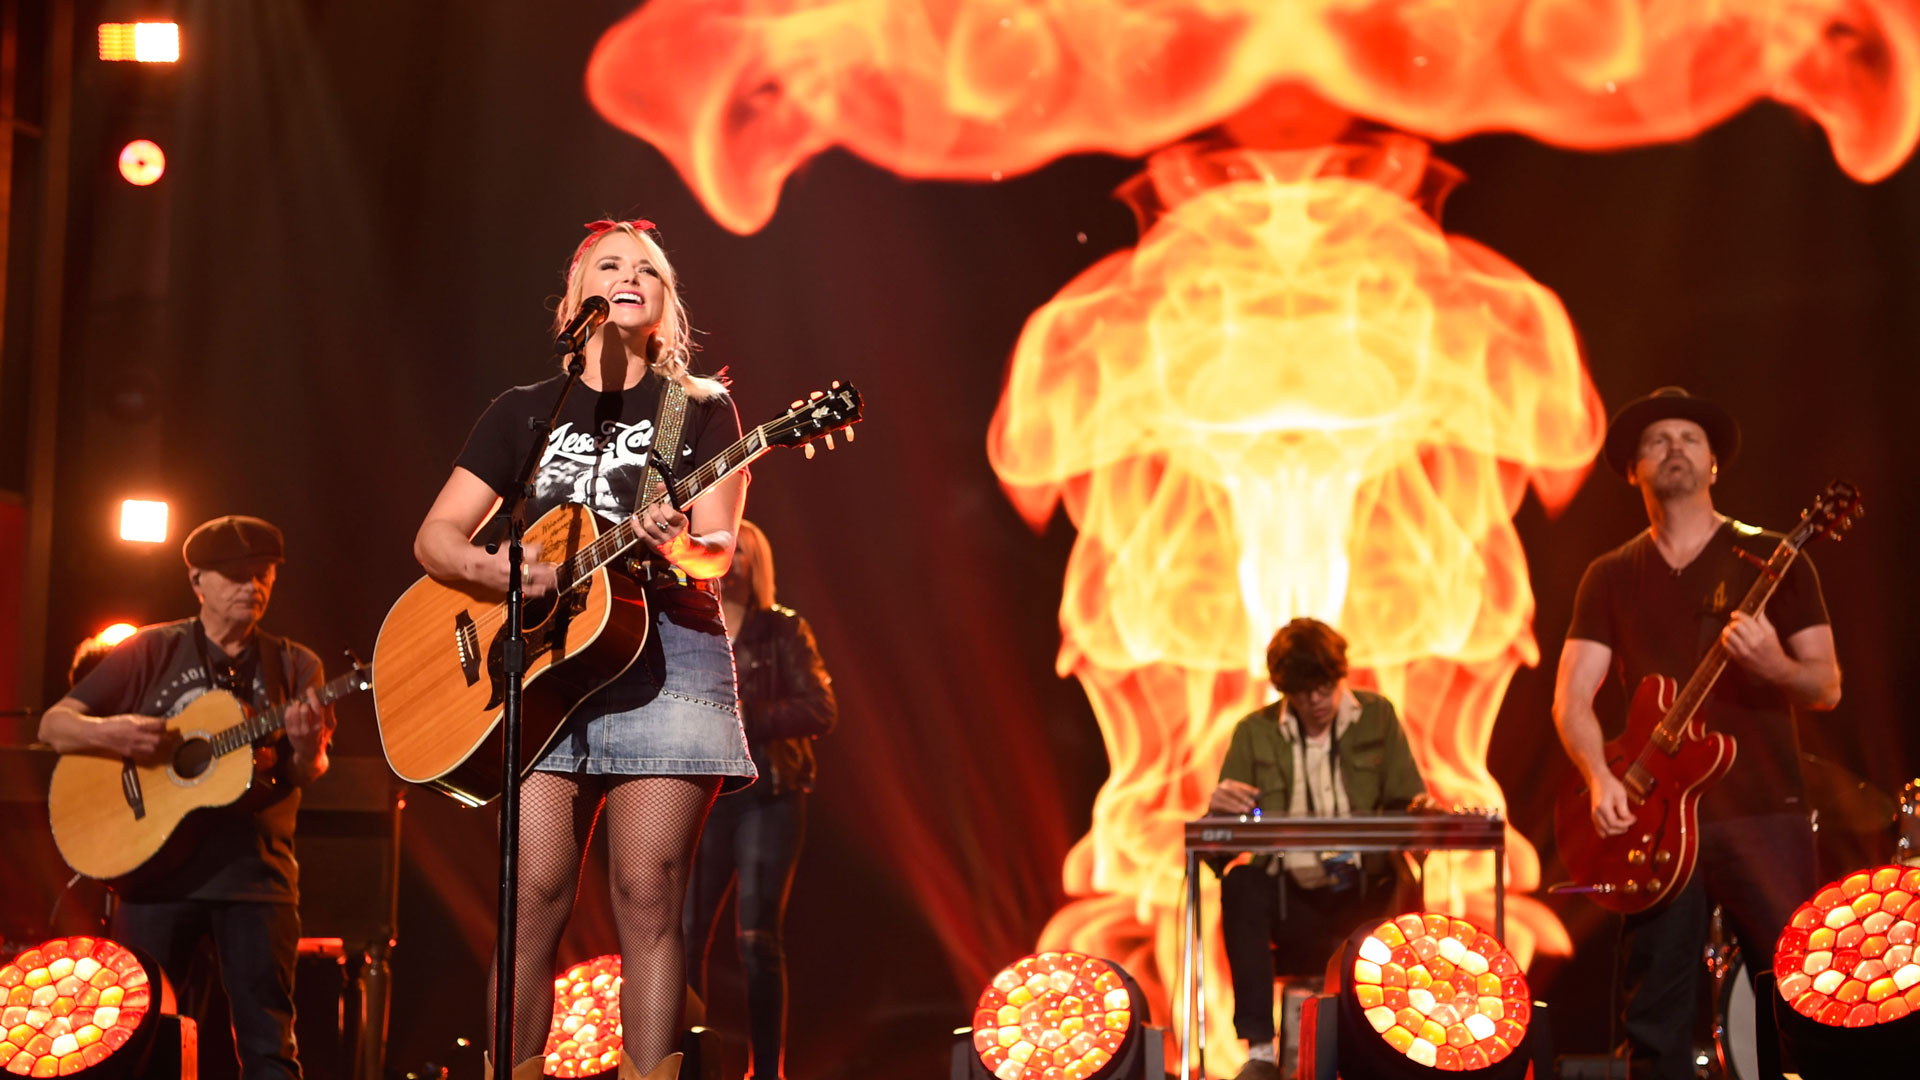 Sunscreen might be necessary for Miranda Lambert's fiery performance at the 53rd ACM Awards.